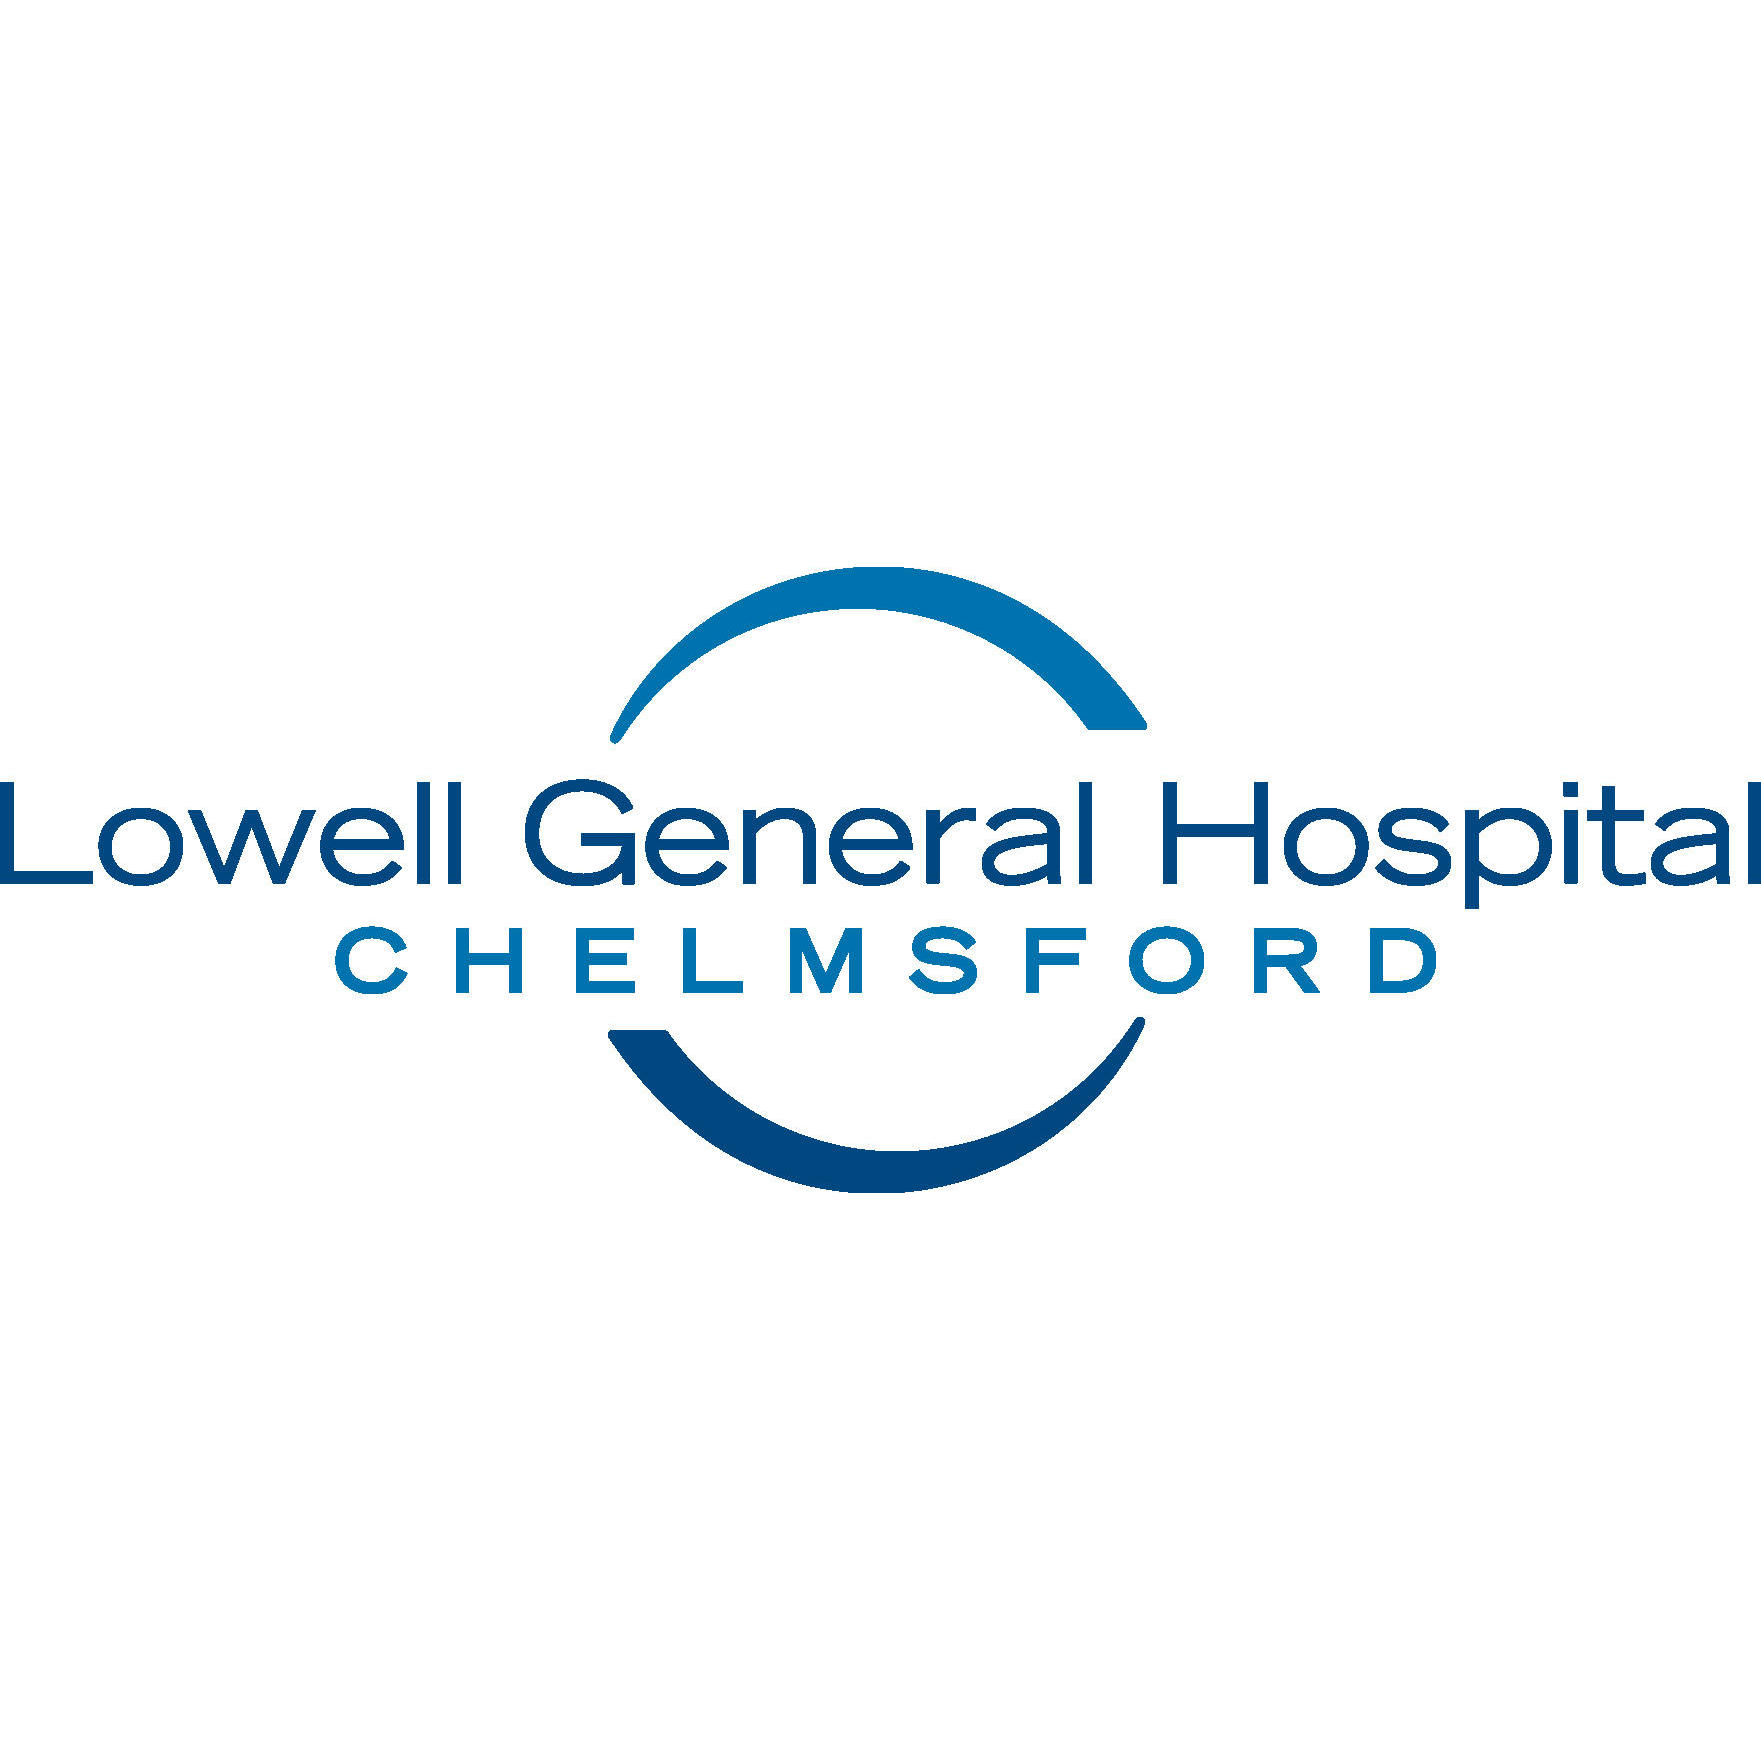 Lowell General Hospital Chelmsford Campus